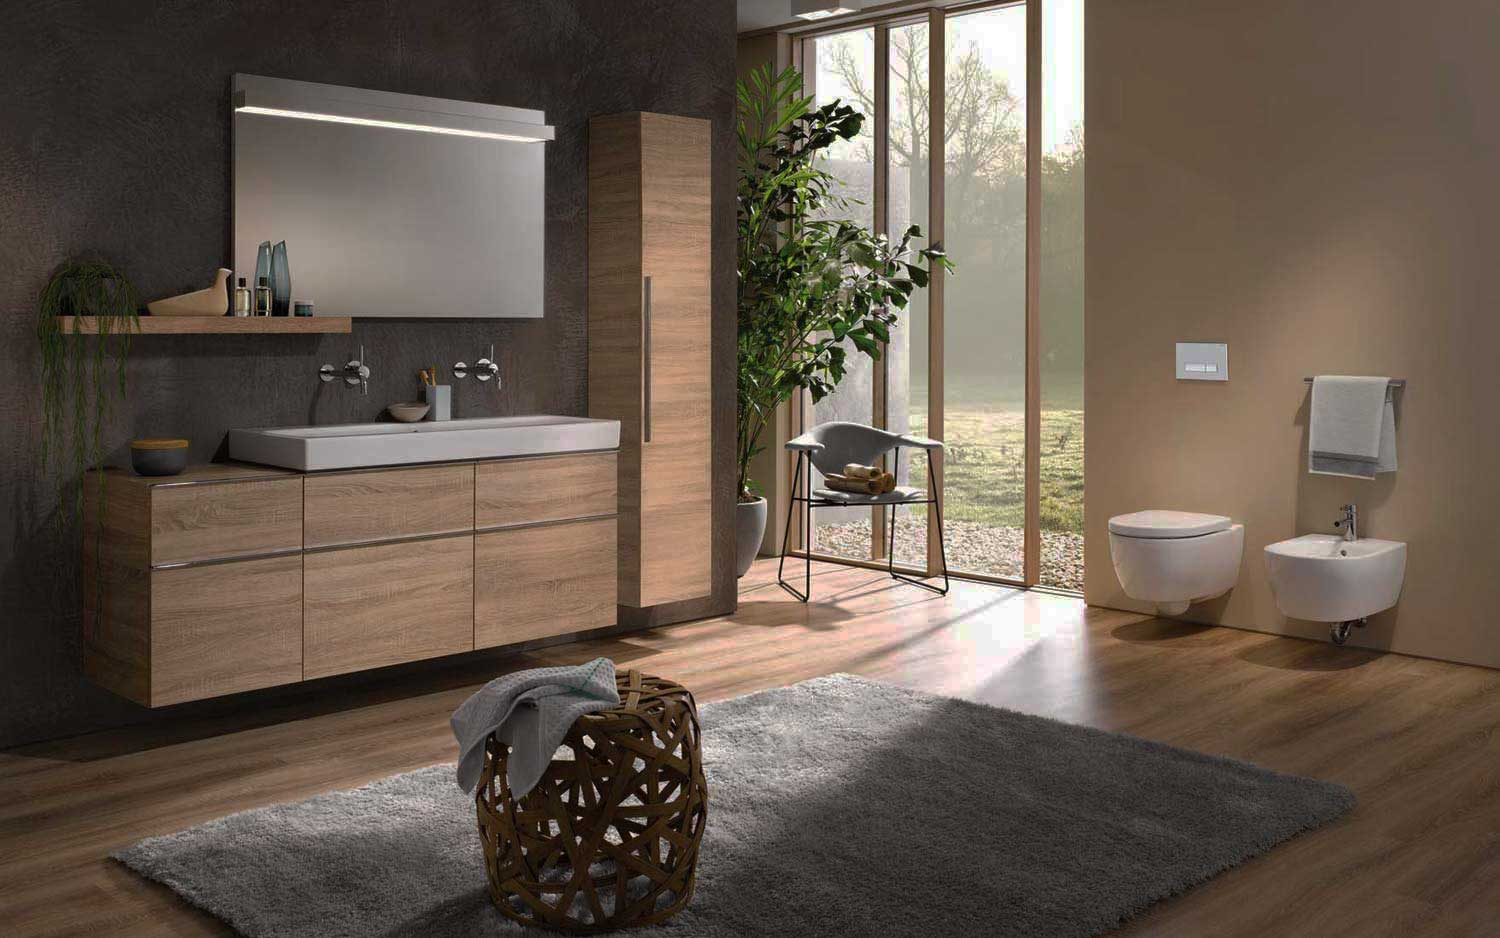 fitted bathrooms represented in gray in a bright room